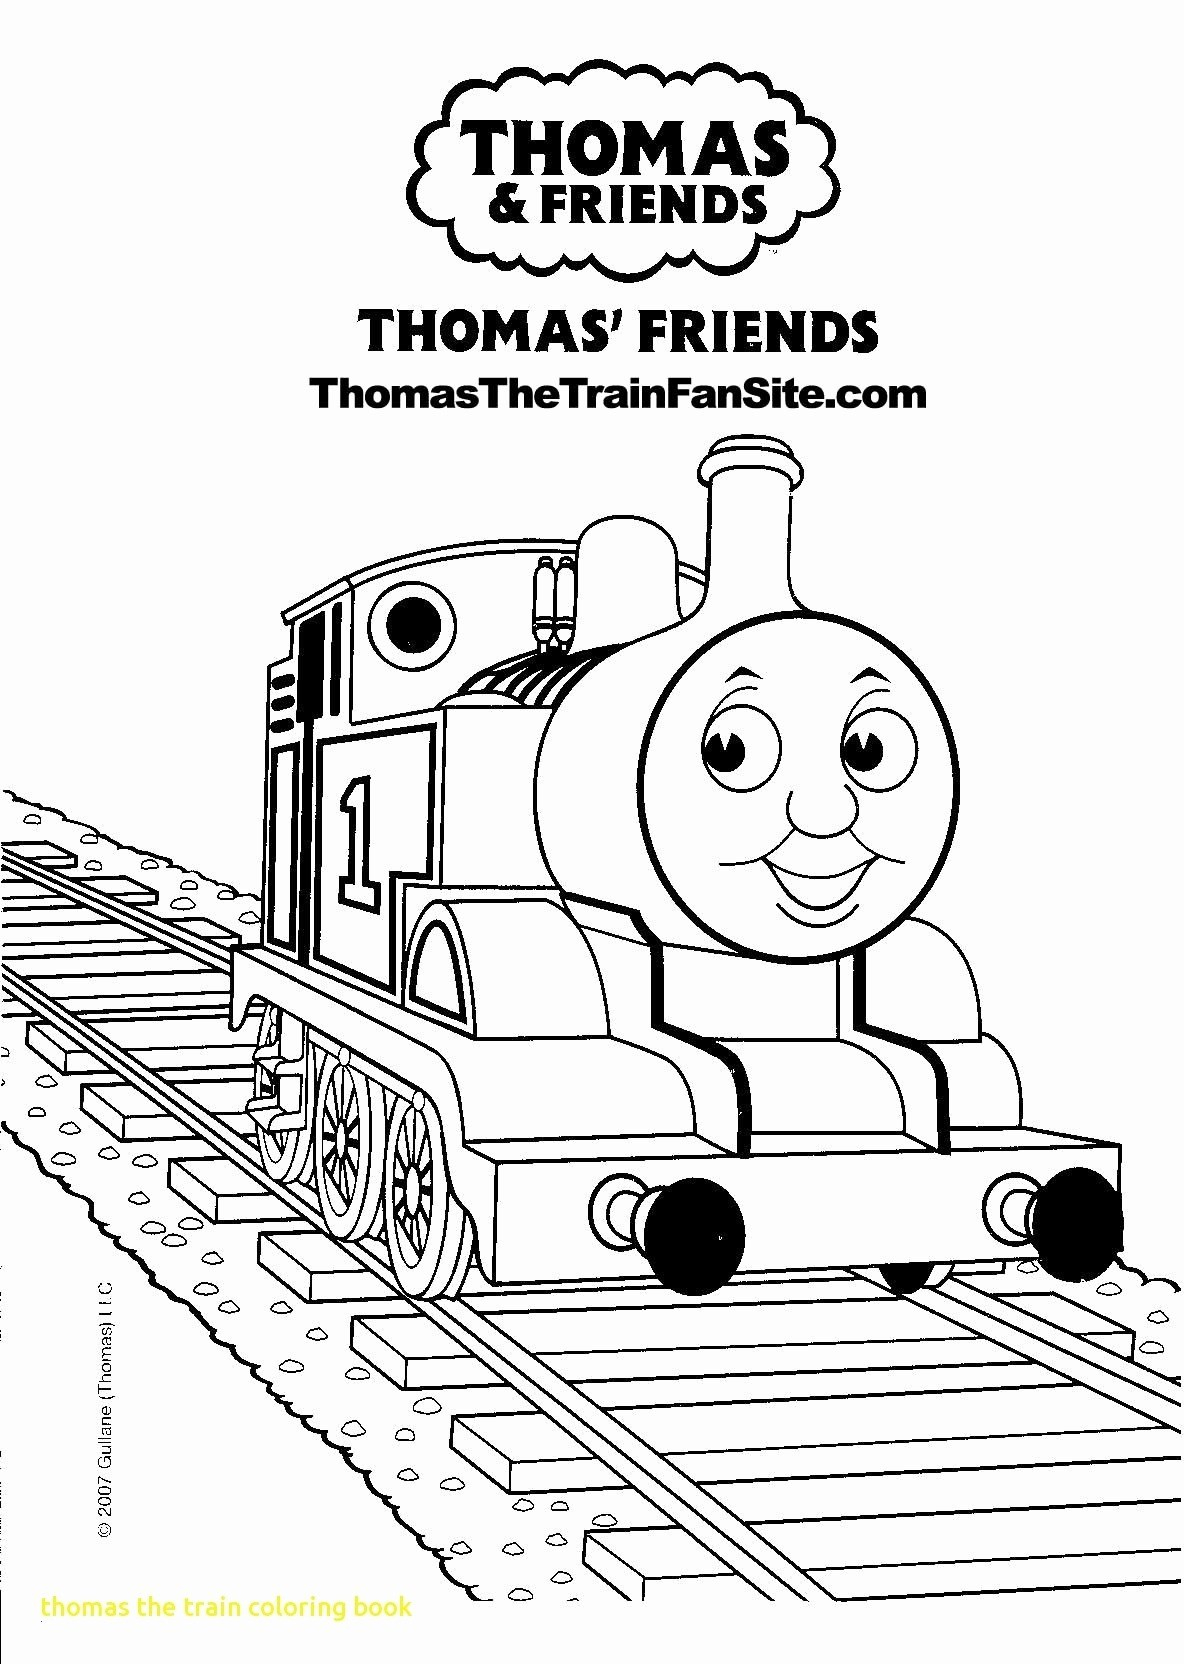 Thomas And Friends Coloring Pages Thomas And Friends Printables Shadooneh